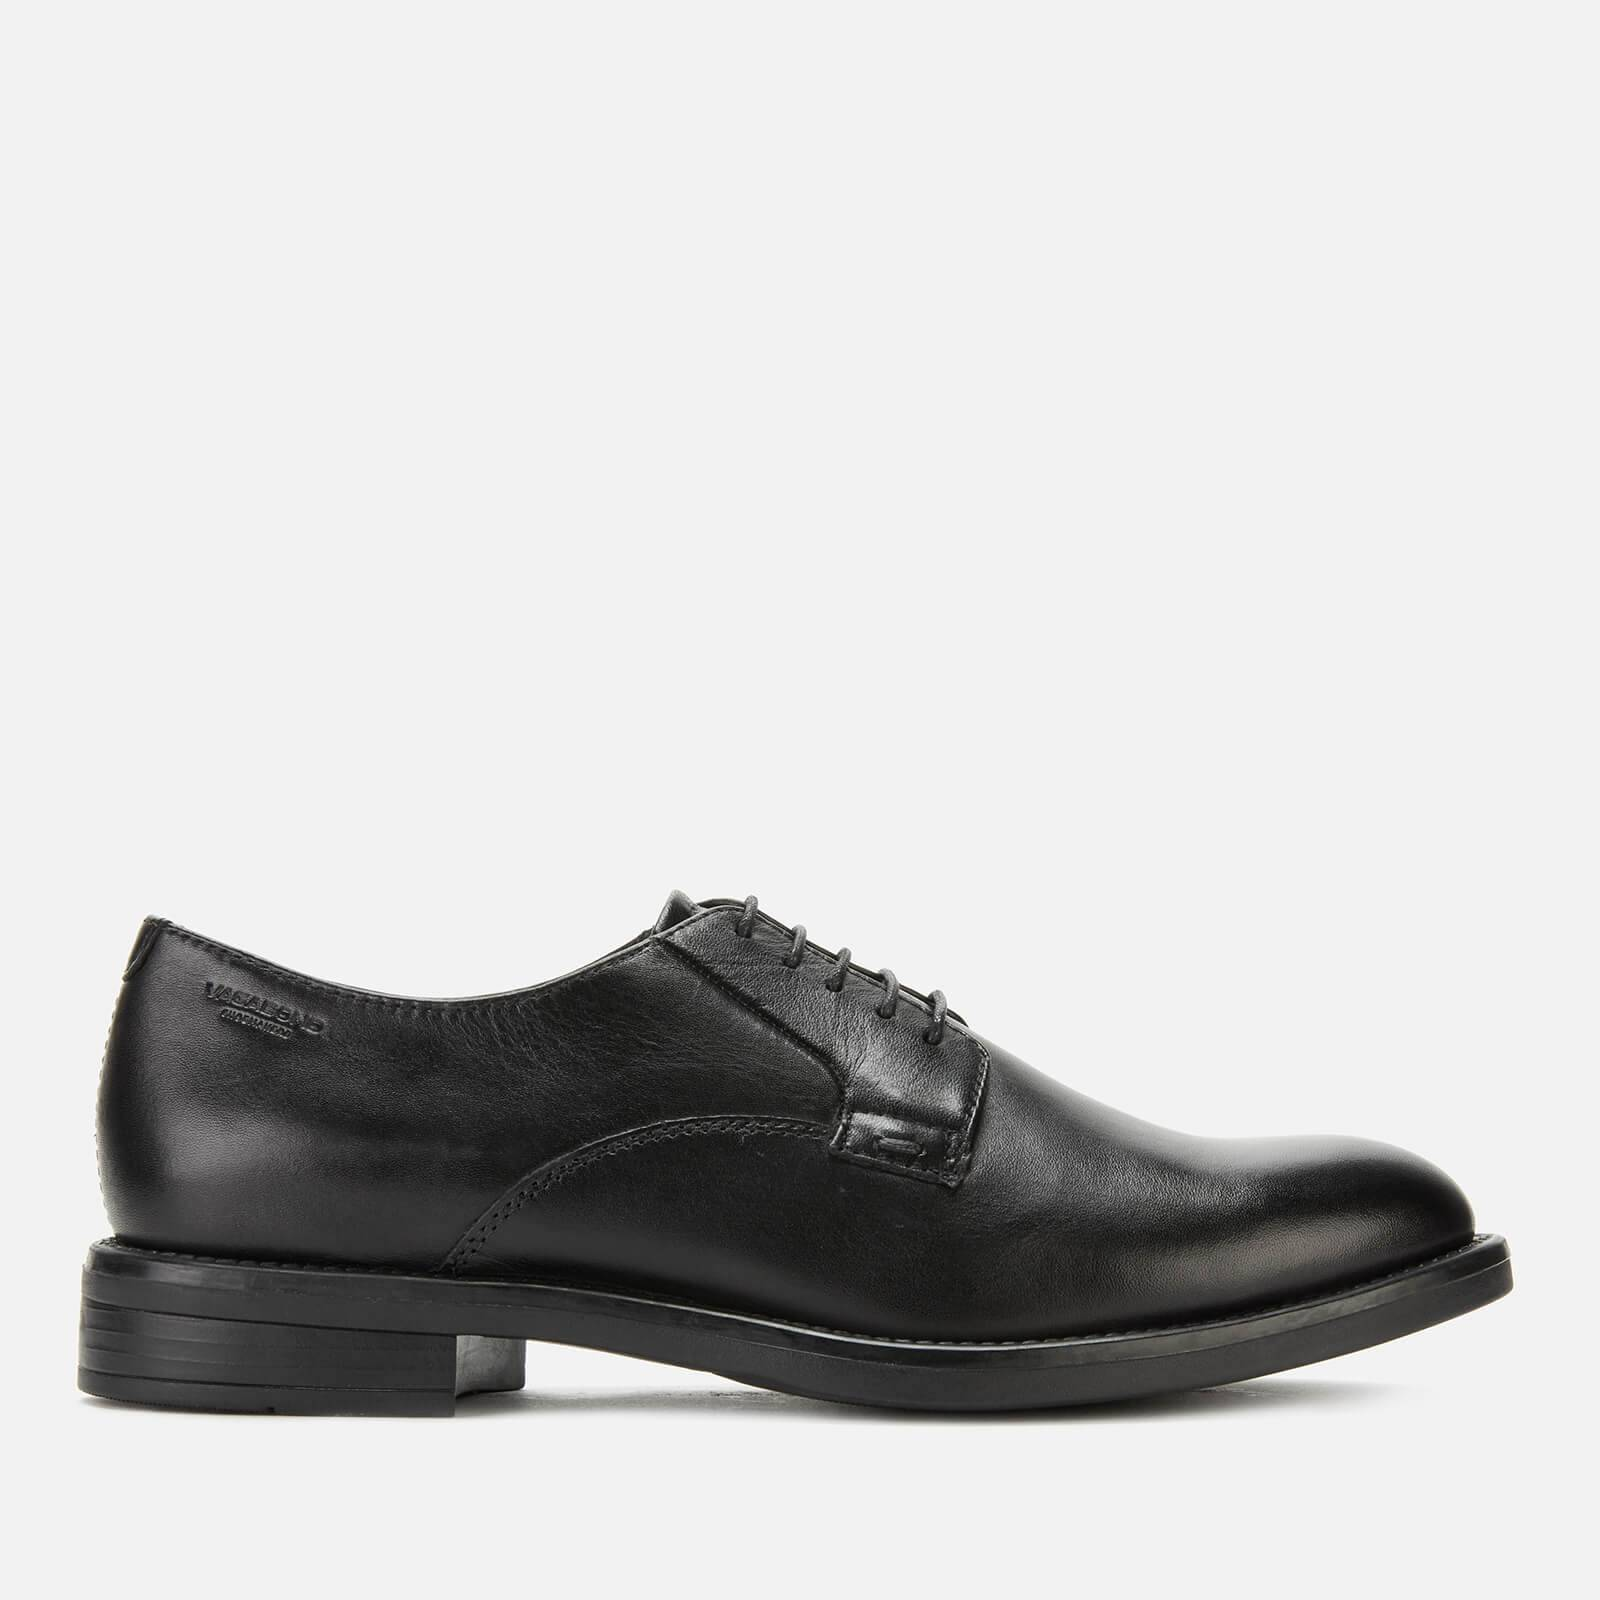 Vagabond Women's Amina Leather Derby Shoes - Black - UK 4 - Black